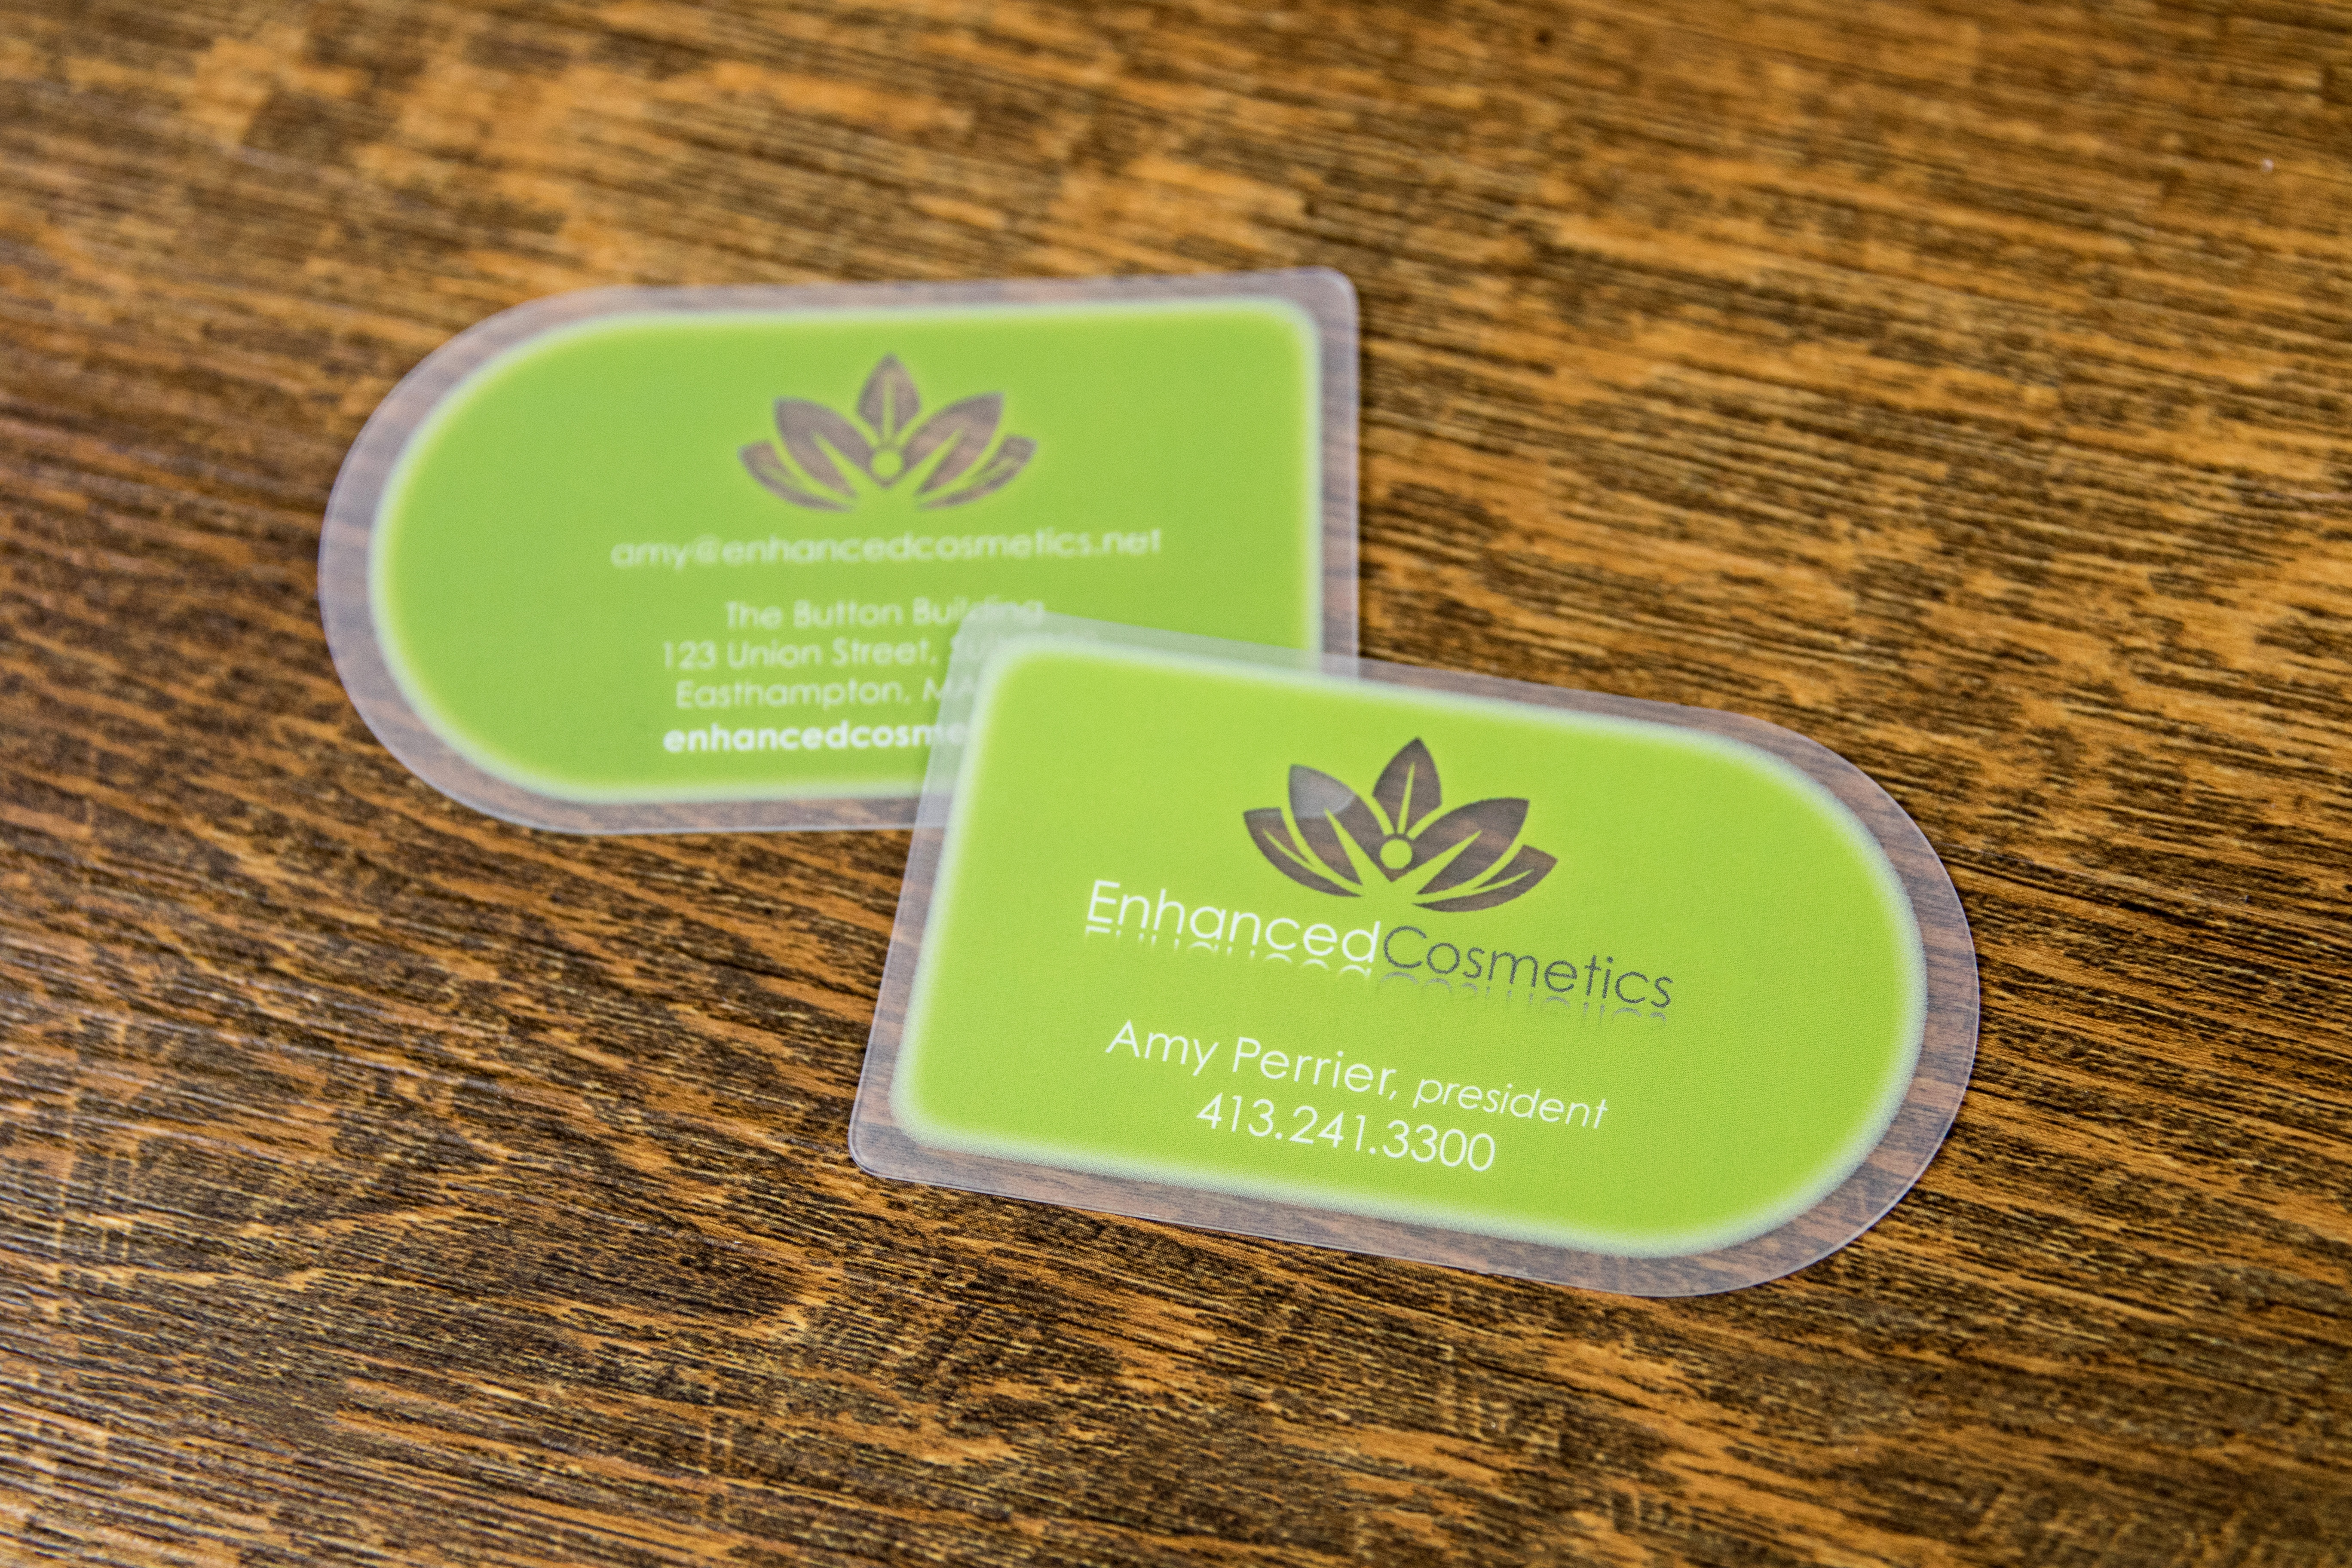 cosmetic business cards